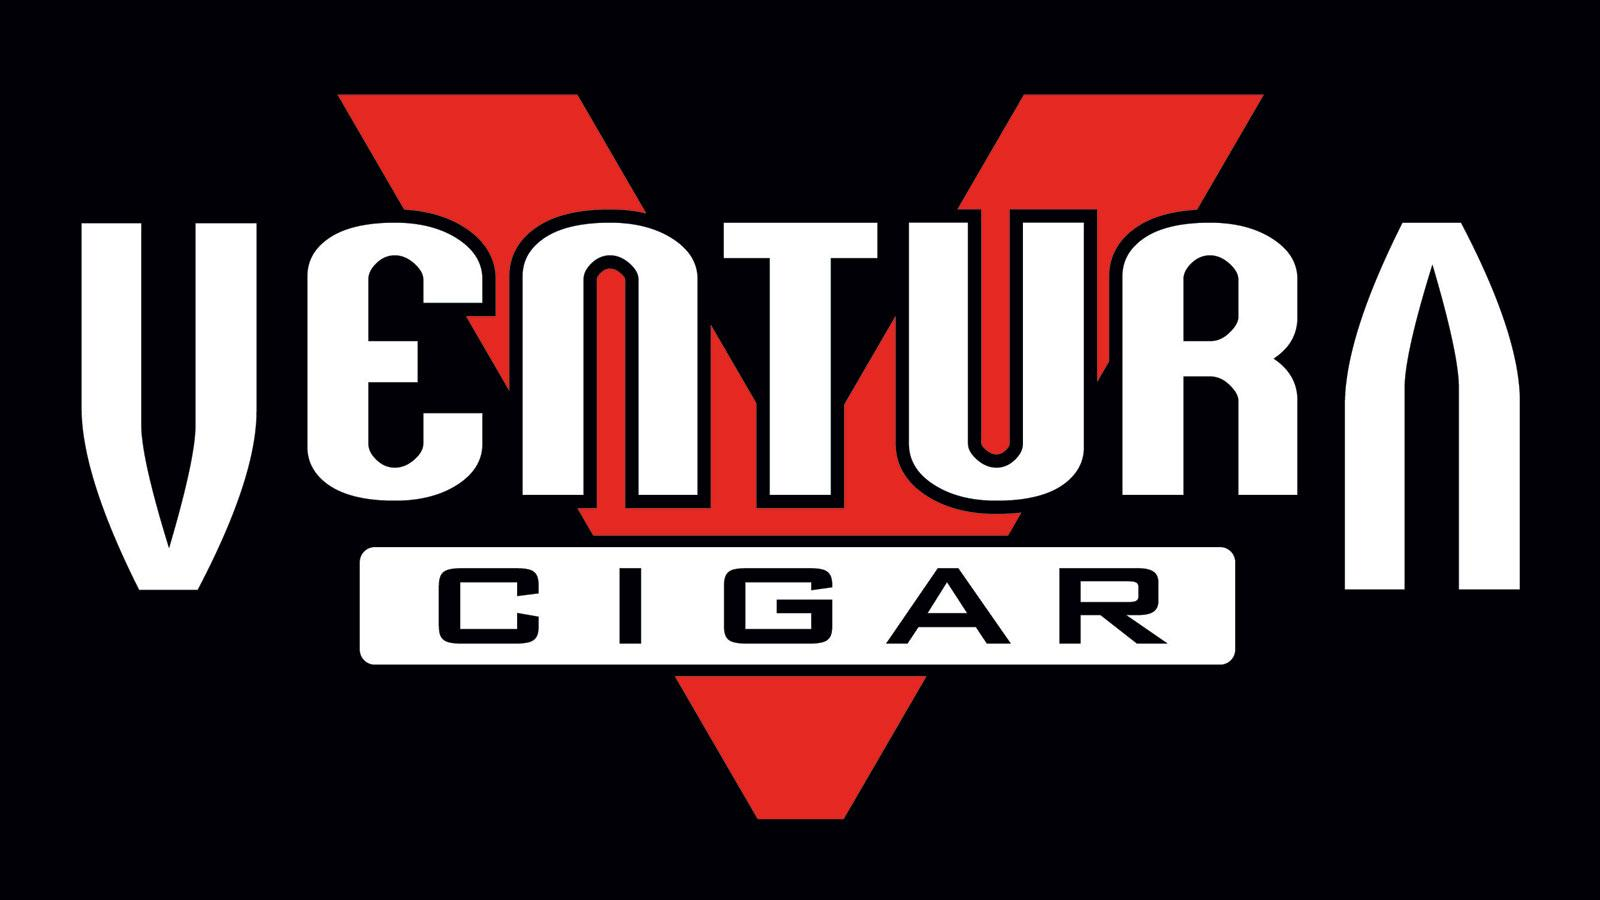 Ventura Cigar Co. Shifts to Standalone Business Model